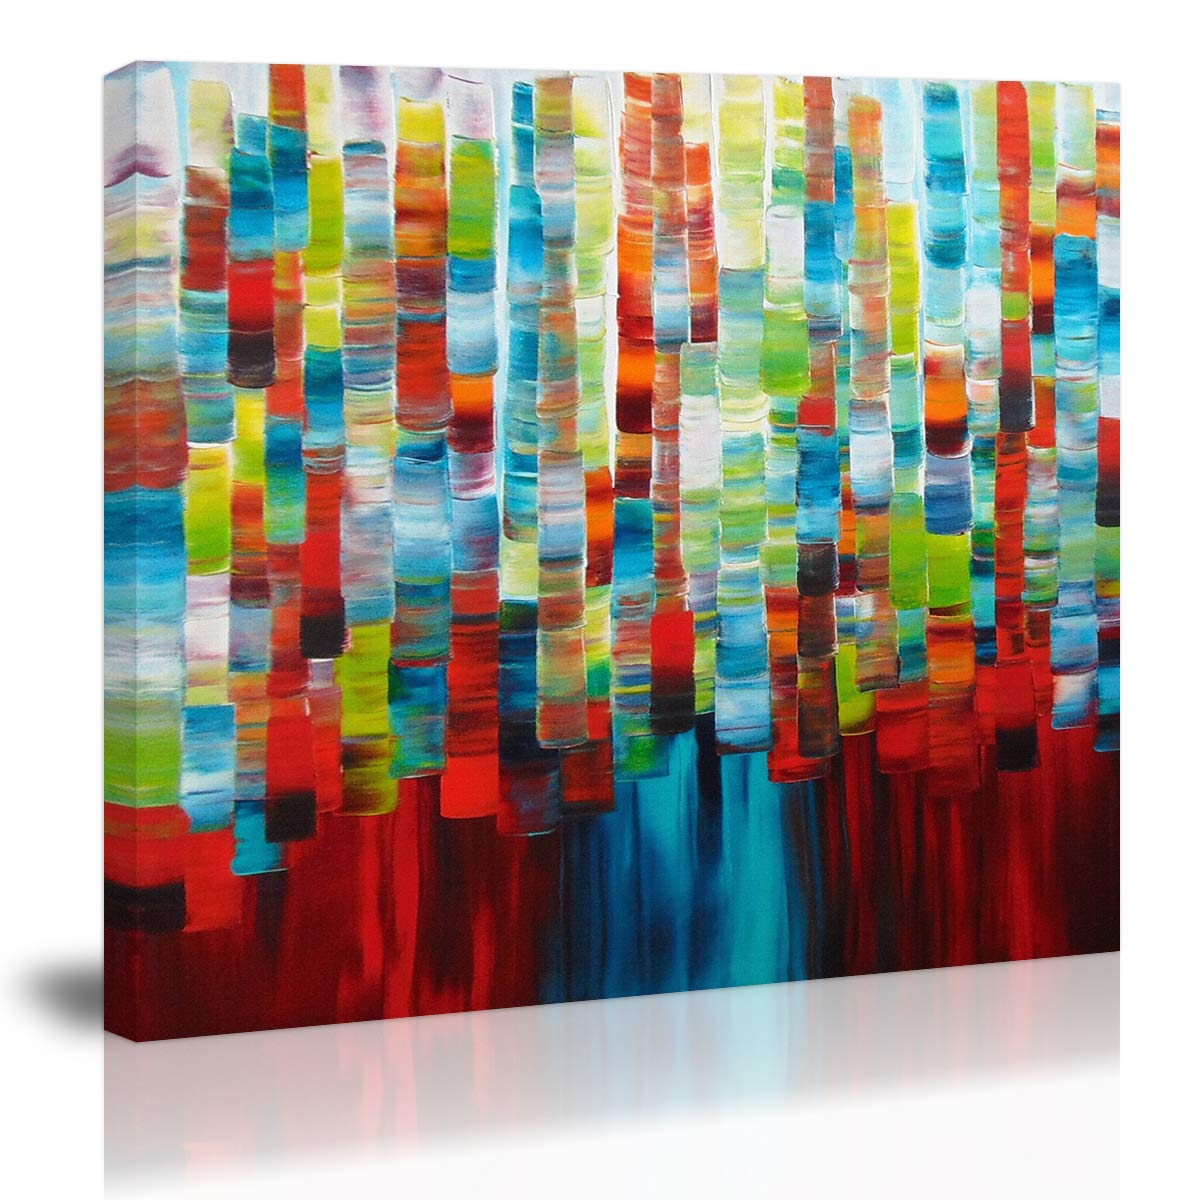 Colorful Modern Abstract Wall Art Decor Canvas Painting Kitchen Prints Pictures for Home Living Dining Room